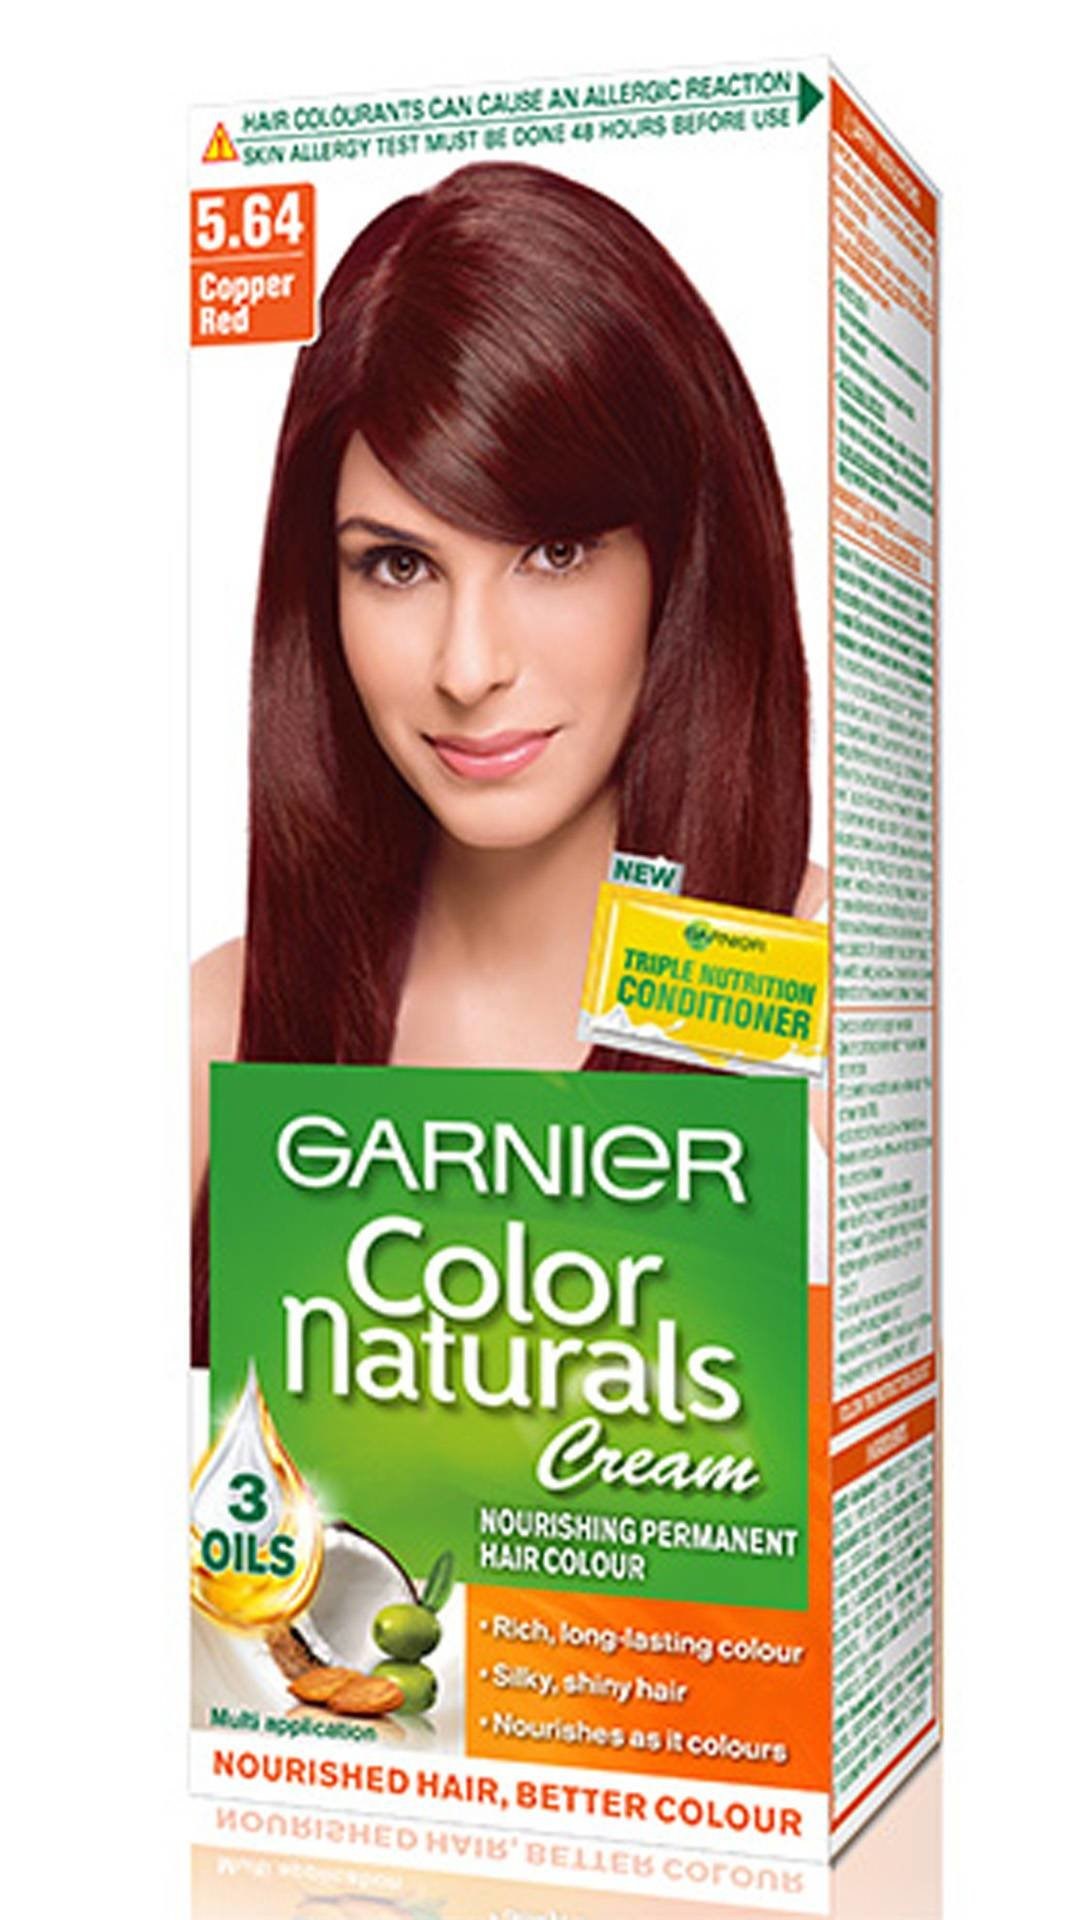 The Best Garnier Hair Color Garnier Hair Color Customer Review Mouthshut Com Pictures